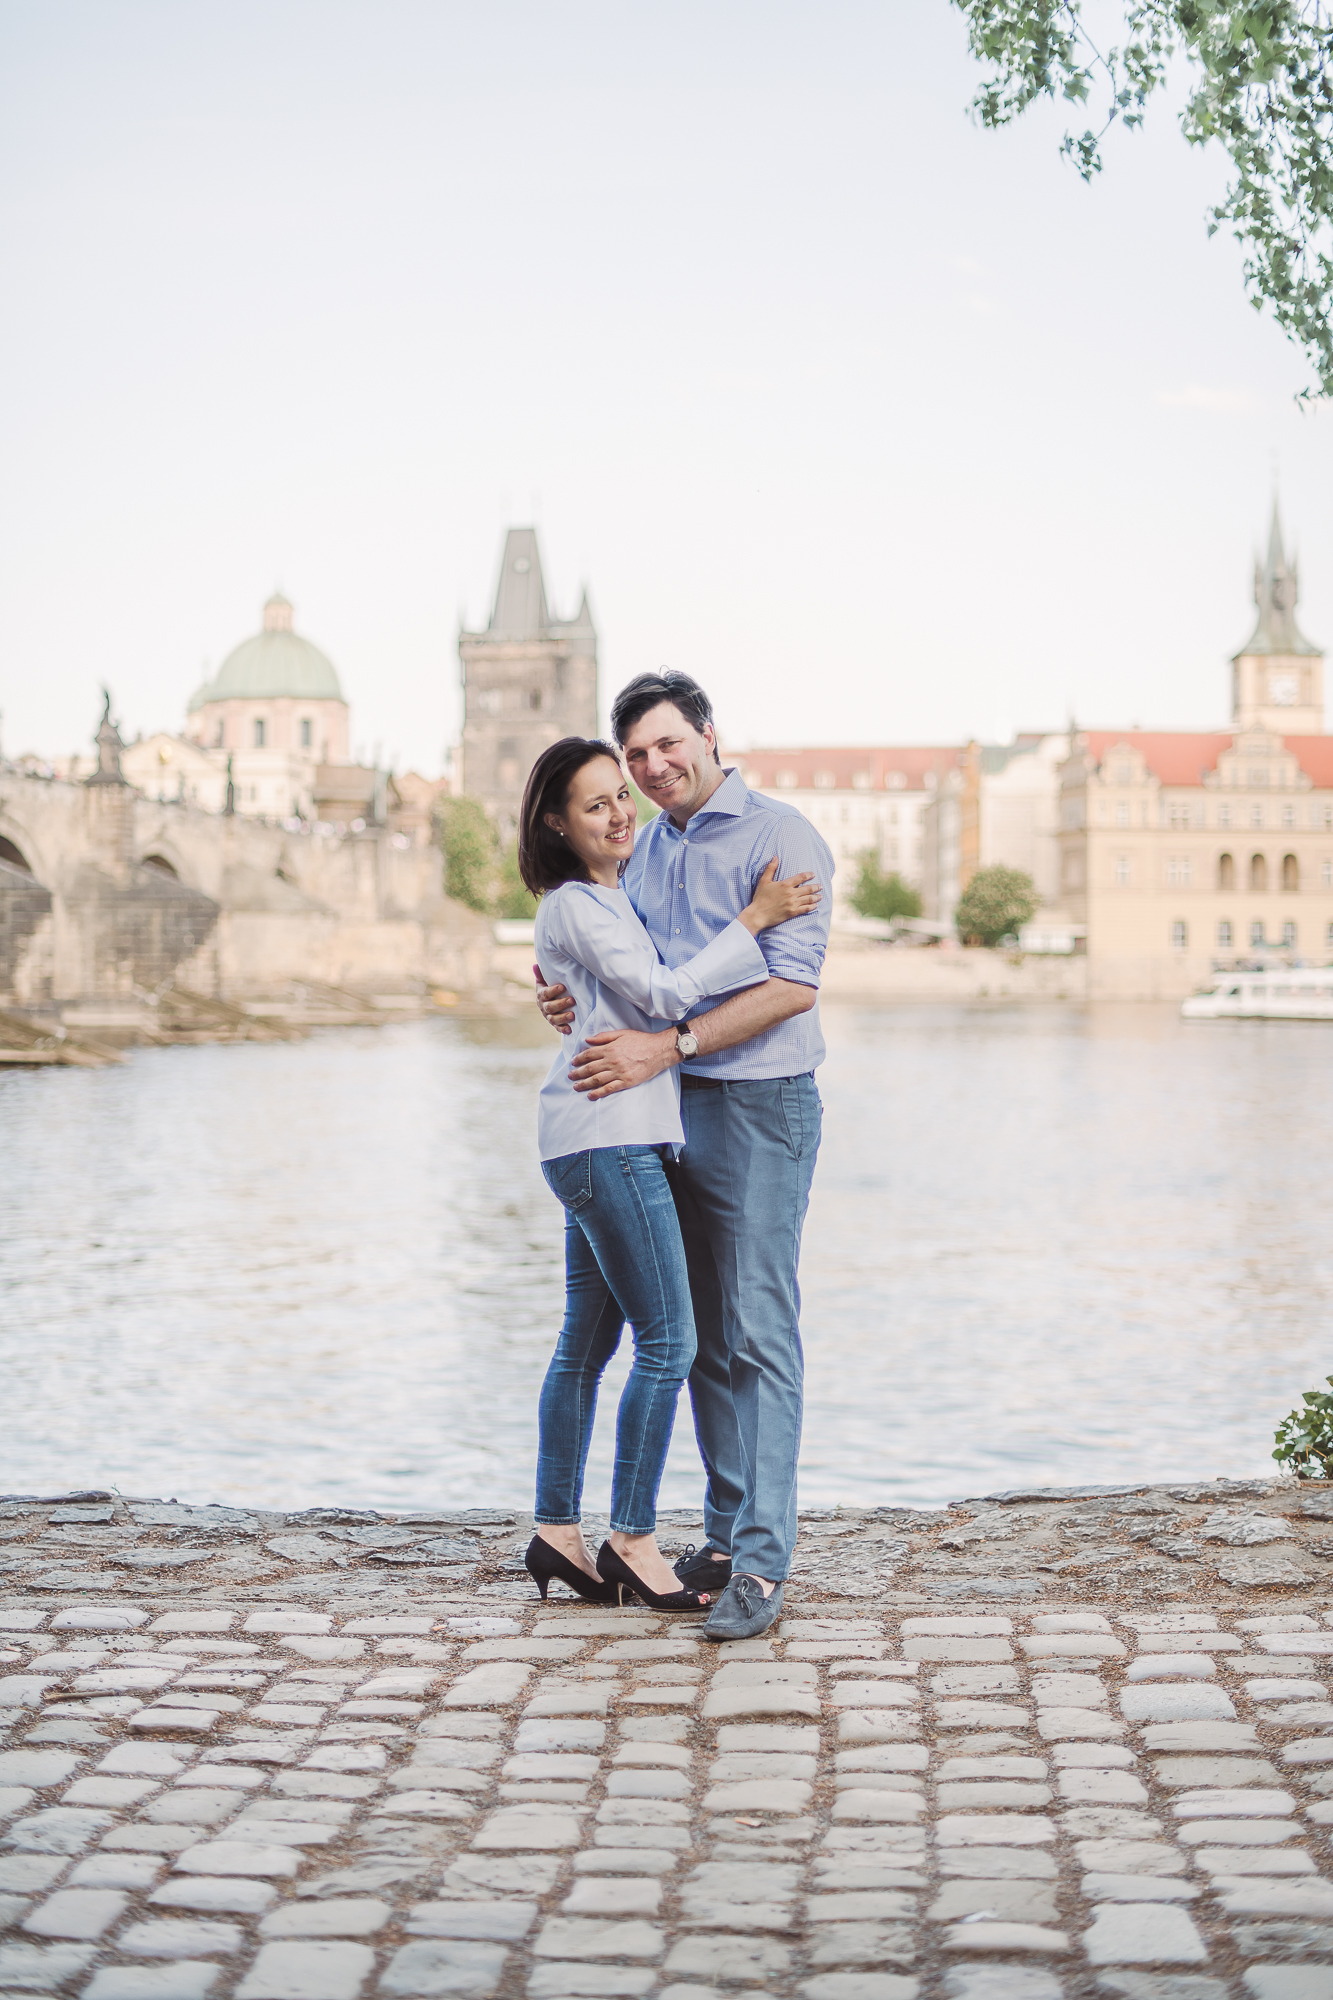 Prague-Wedding-Photography-Matej-Trasak-Engagement-SD-2.jpg